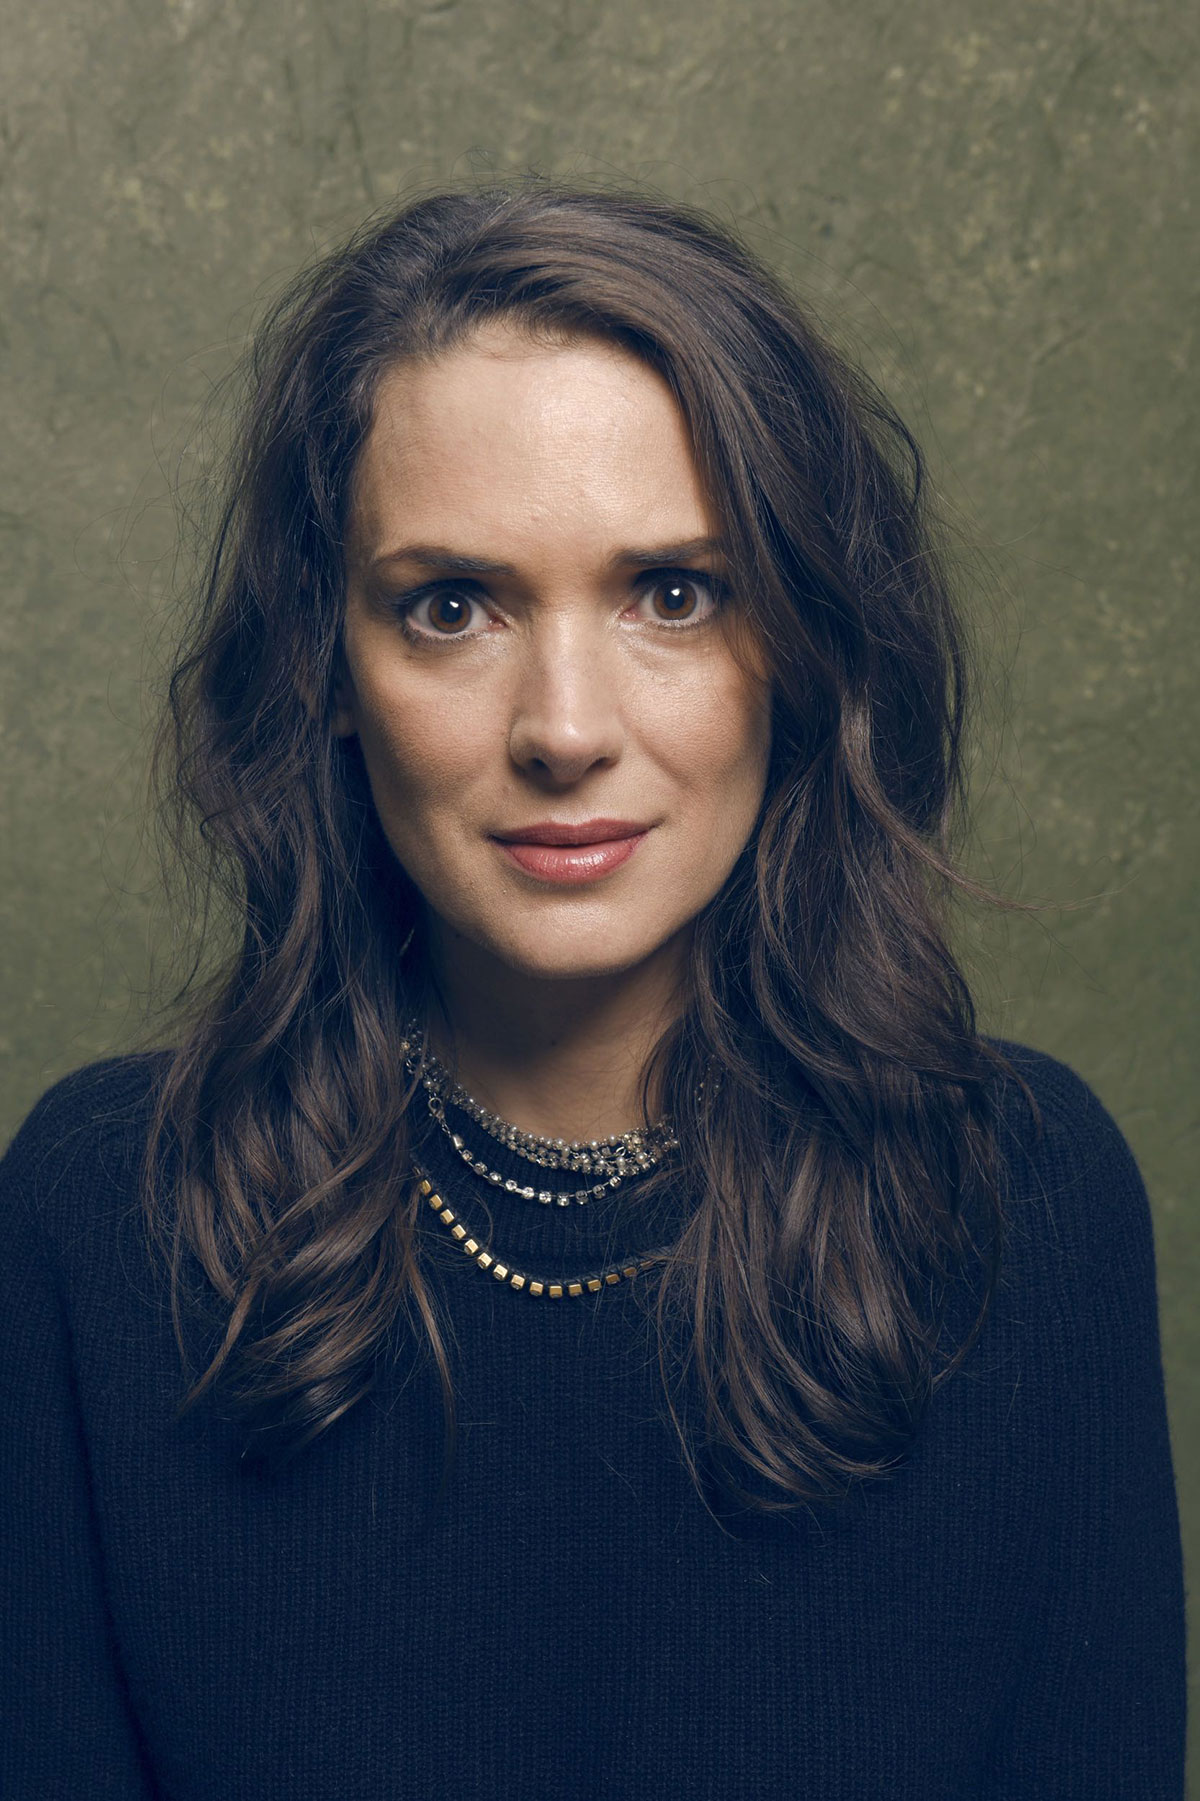 winona ryder - photo #43